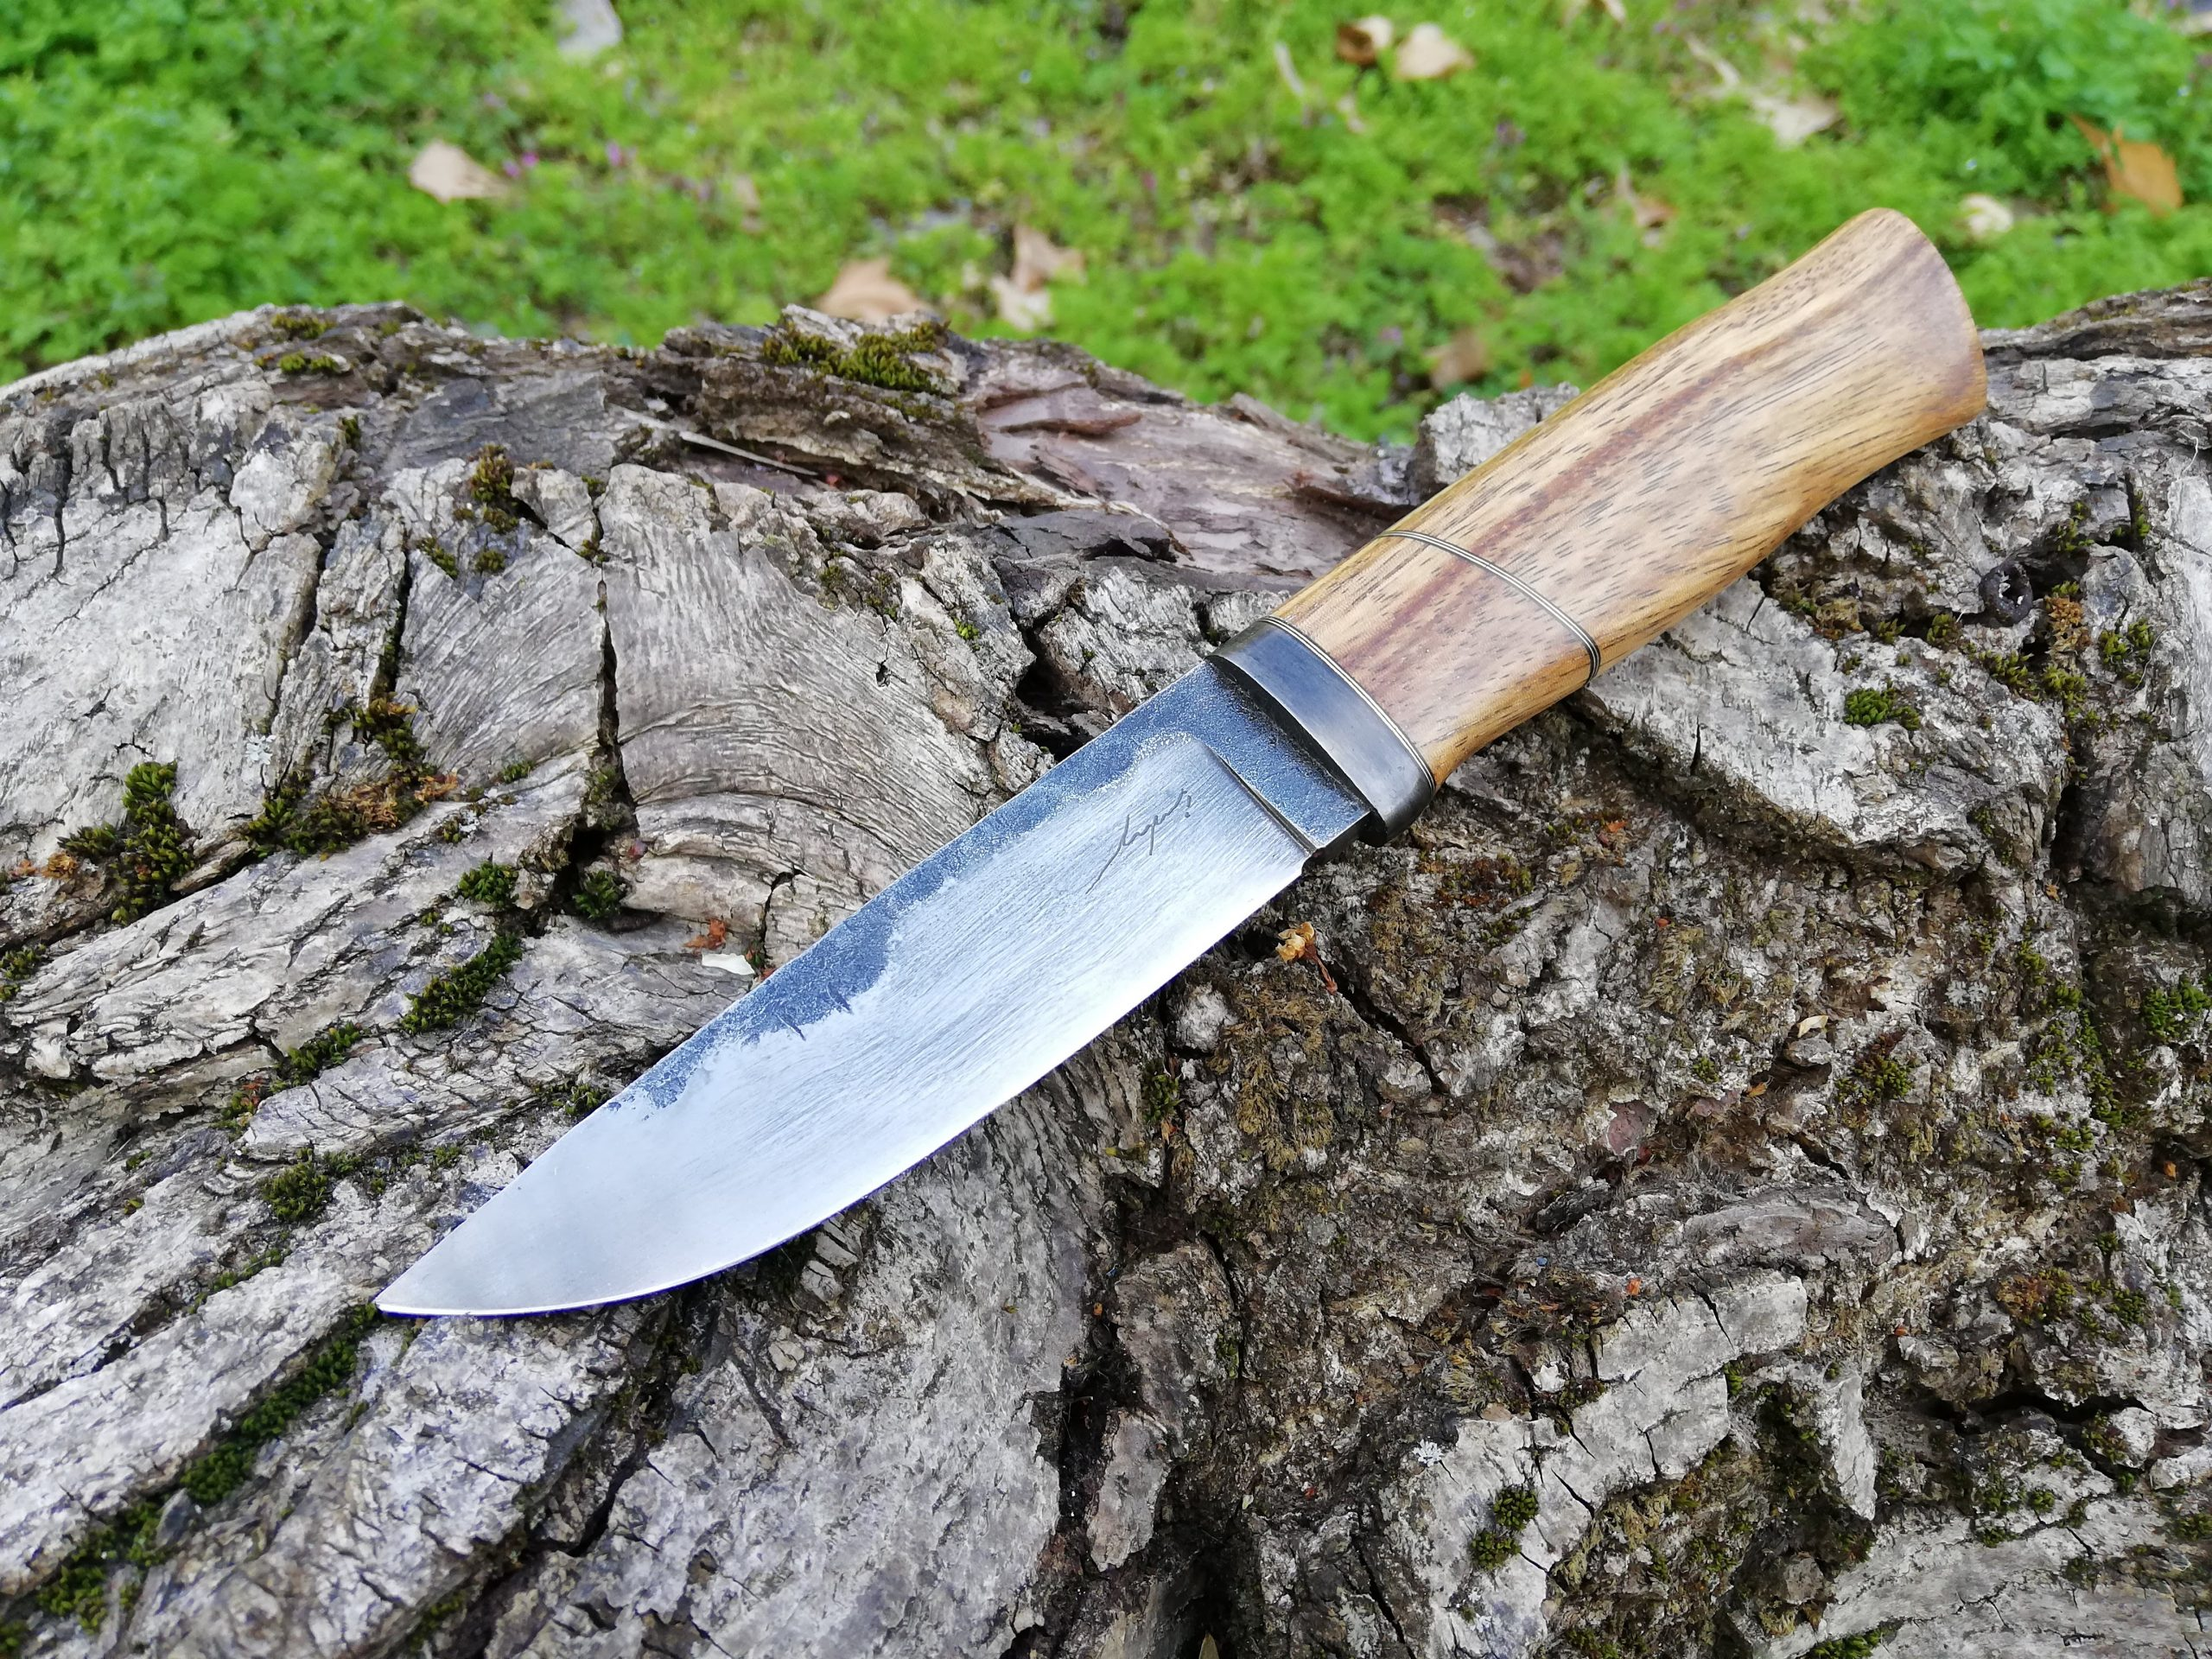 The blade is forged from a round bar of silversteel (K510), differentially heattreated - soft spine and hard cutting edge. The handle is made of zebrano wood.